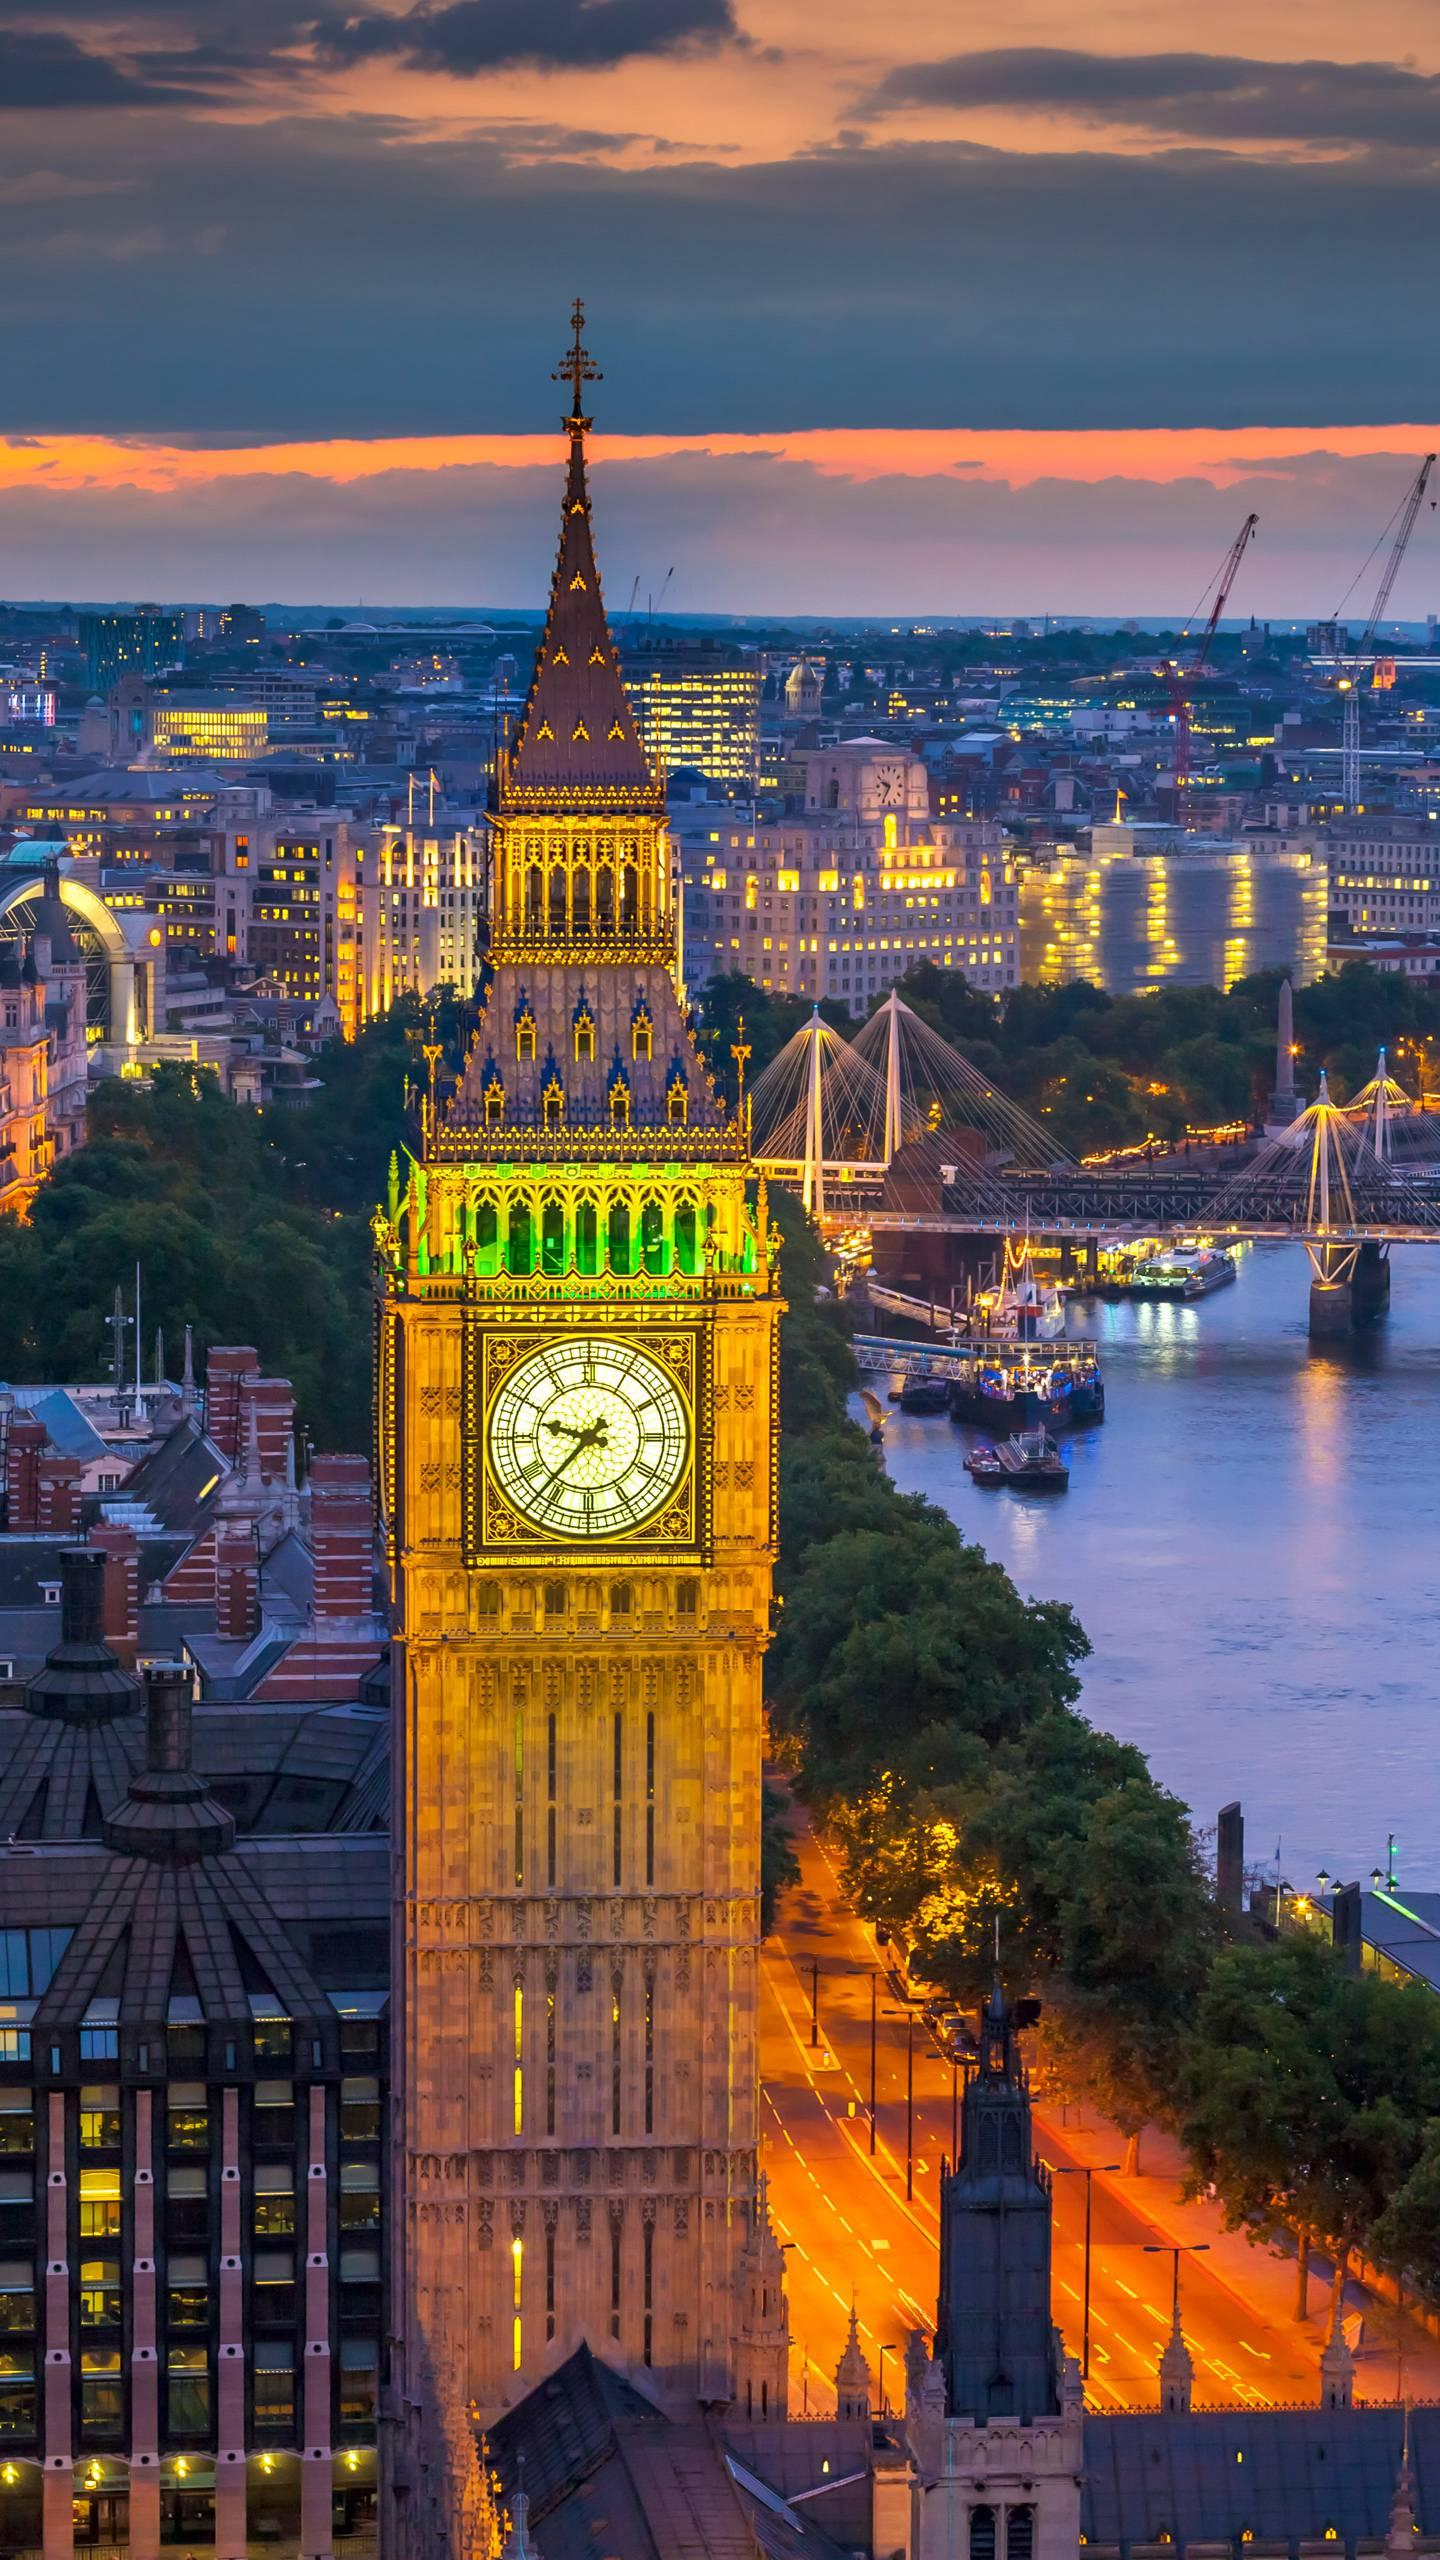 London - Elizabeth Tower. One of the world's most famous Gothic buildings, the traditional landmark of London.